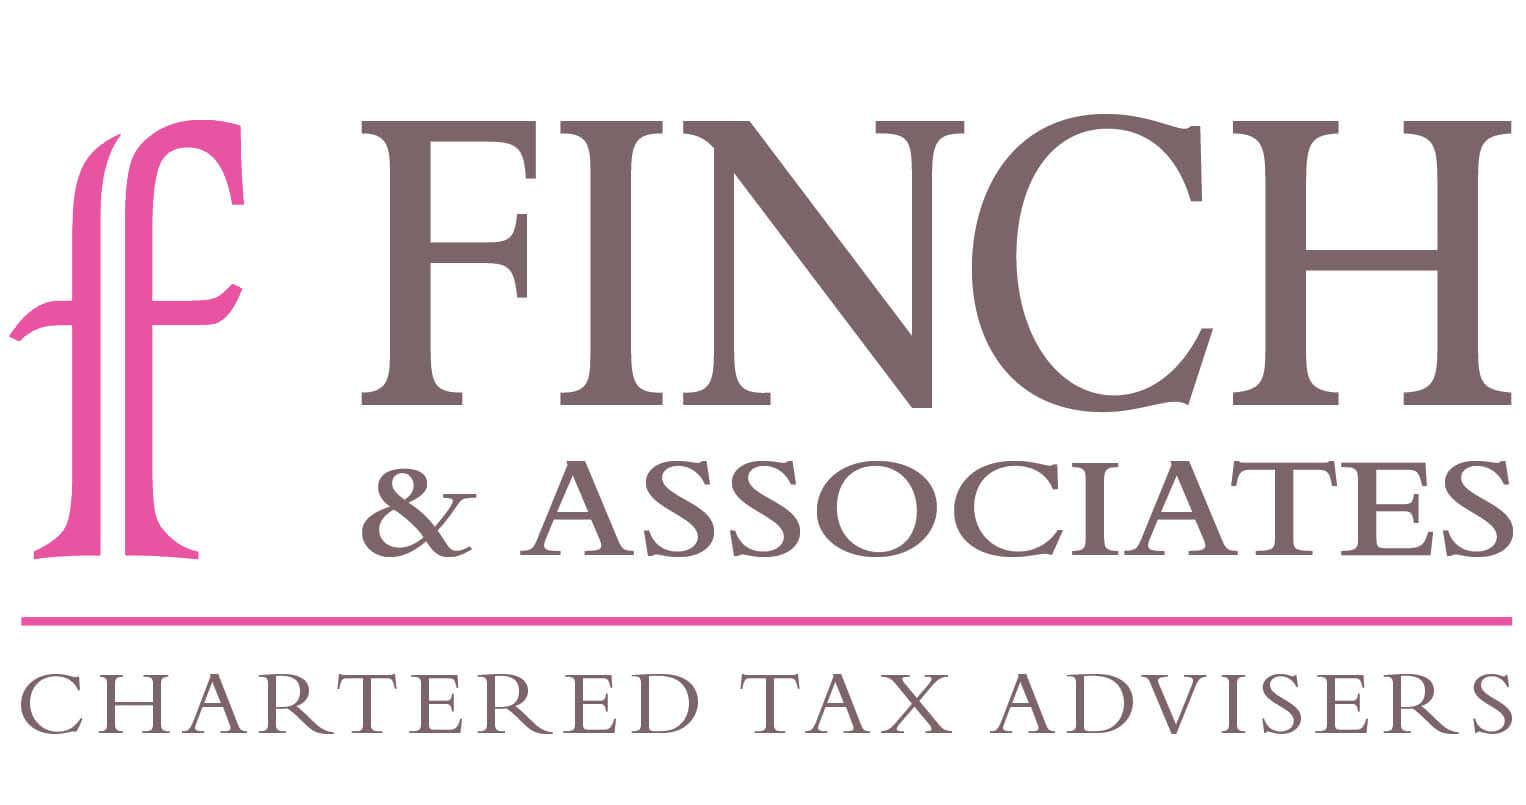 Creative Industries Tax Relief - Finch Associates